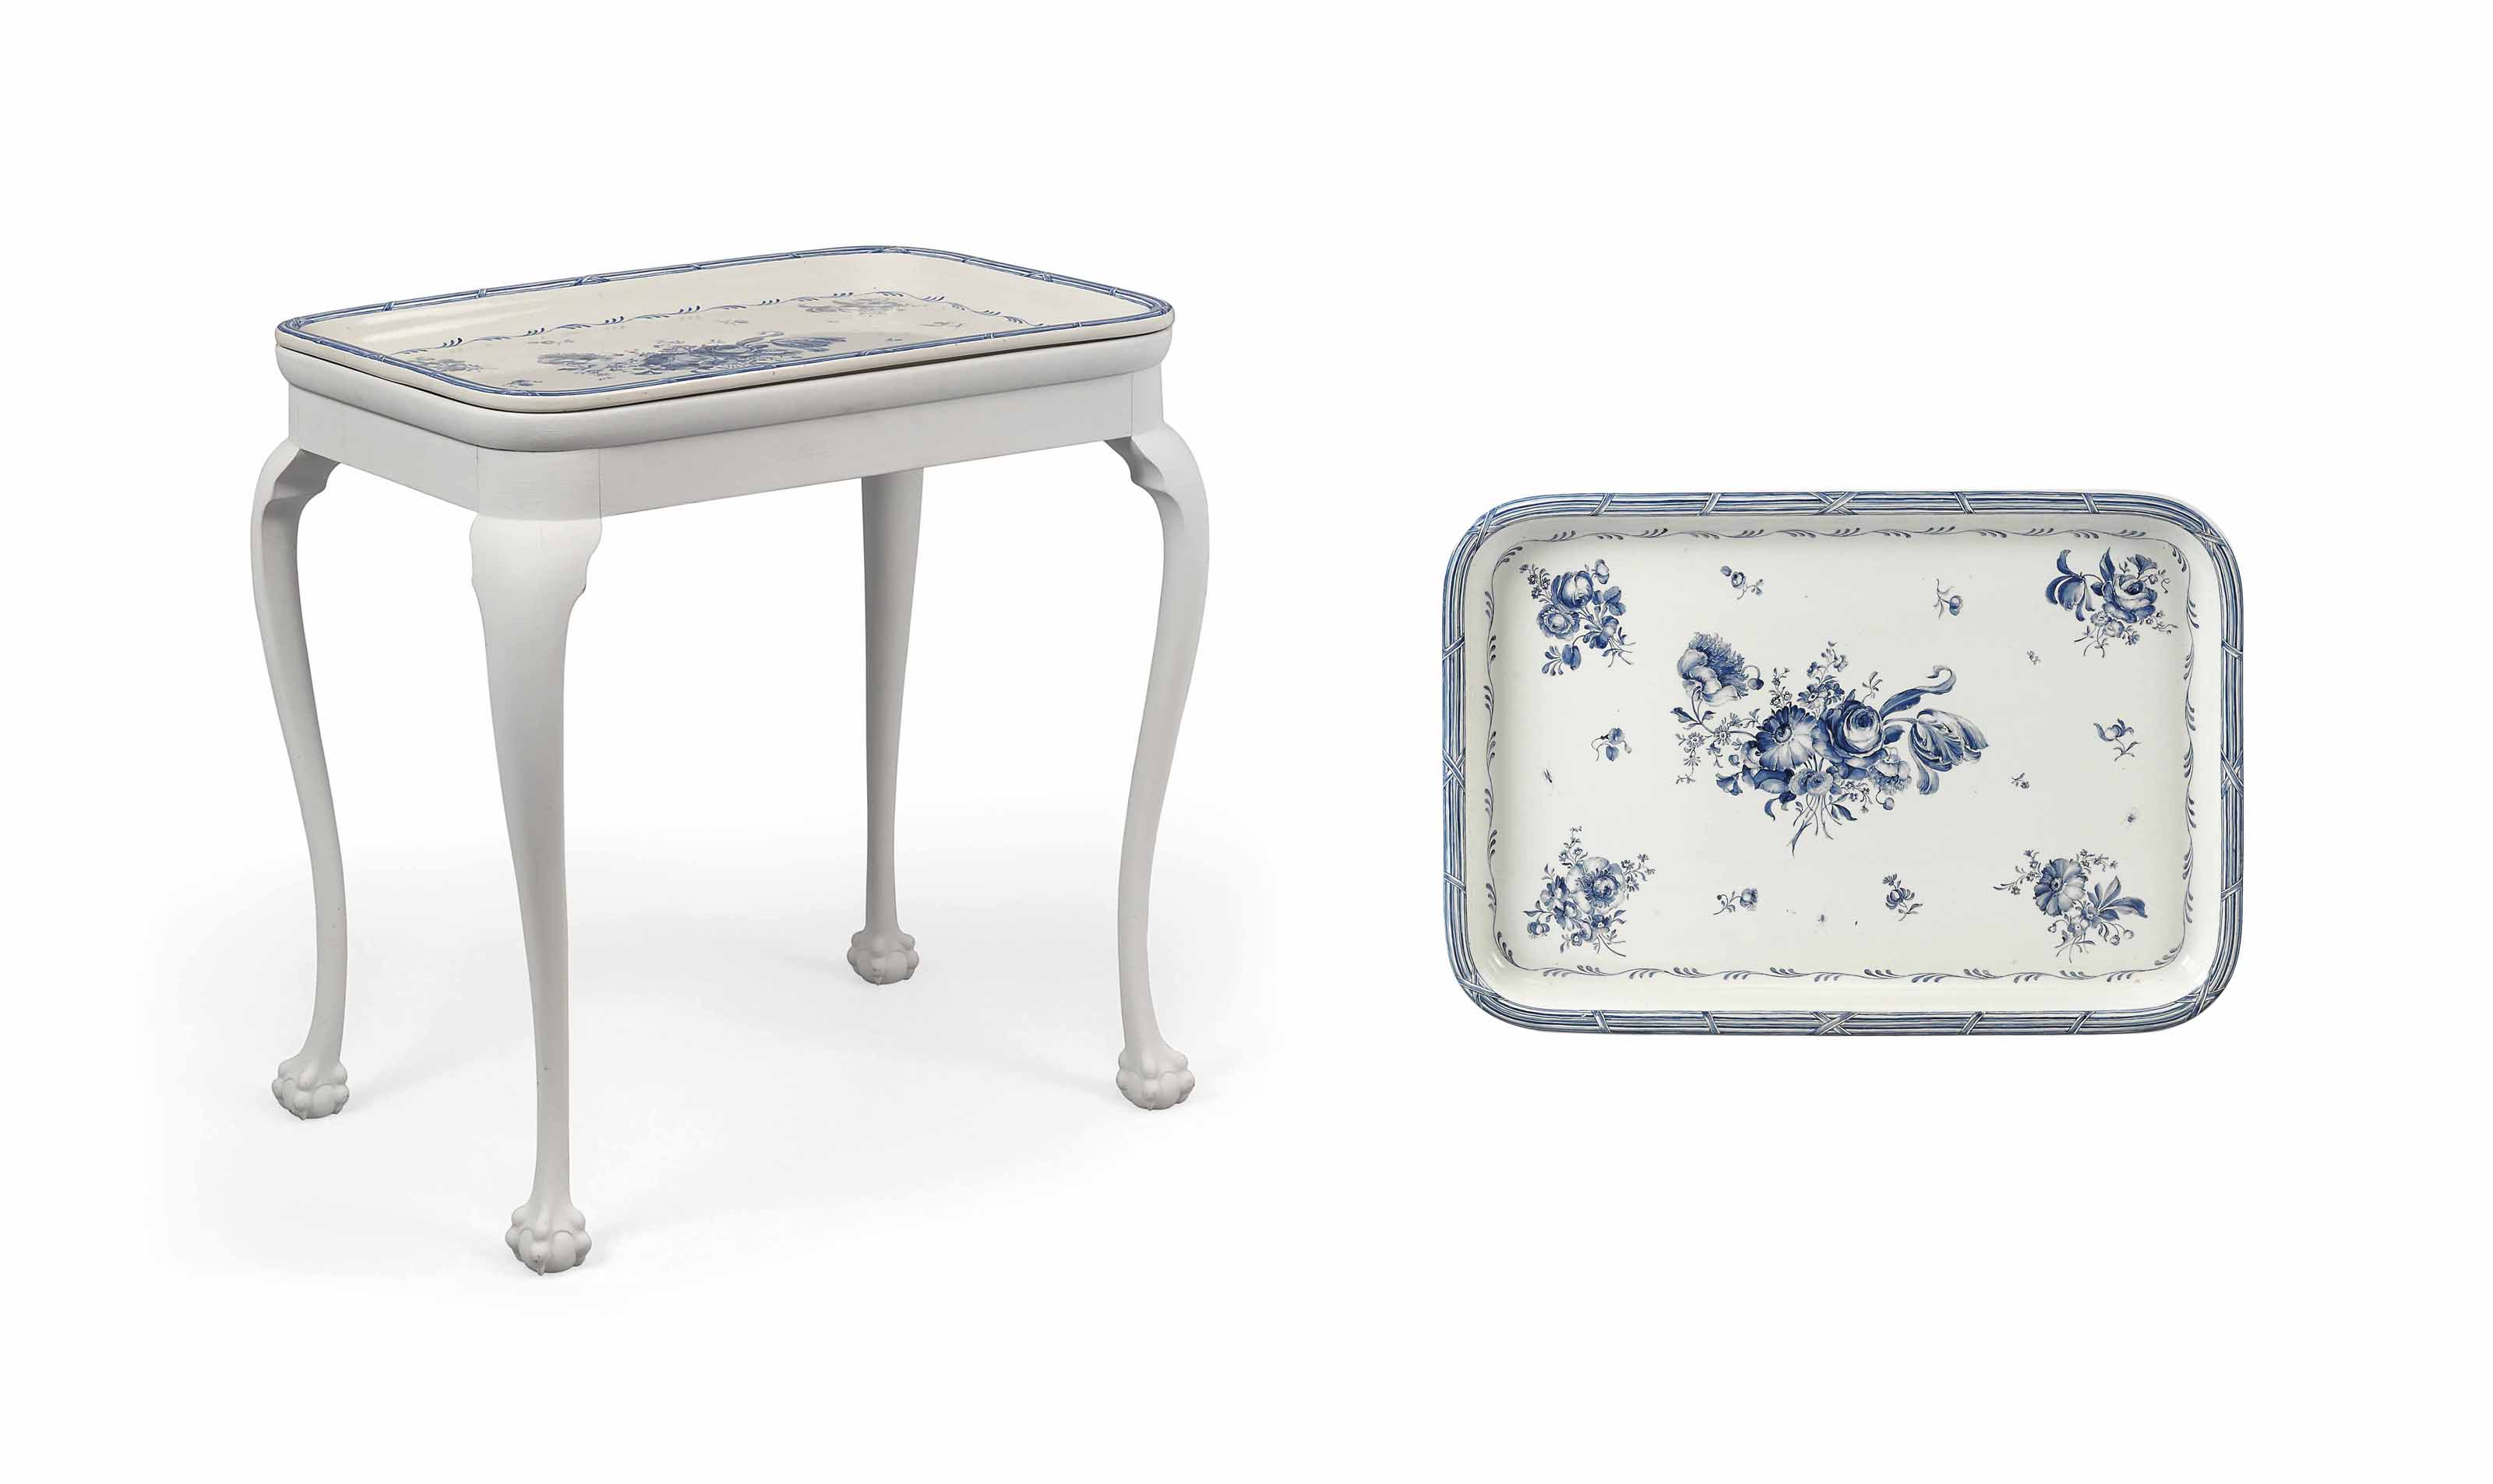 A RORSTRAND EARTHENWARE LARGE RECTANGULAR TRAY ON PAINTED STAND